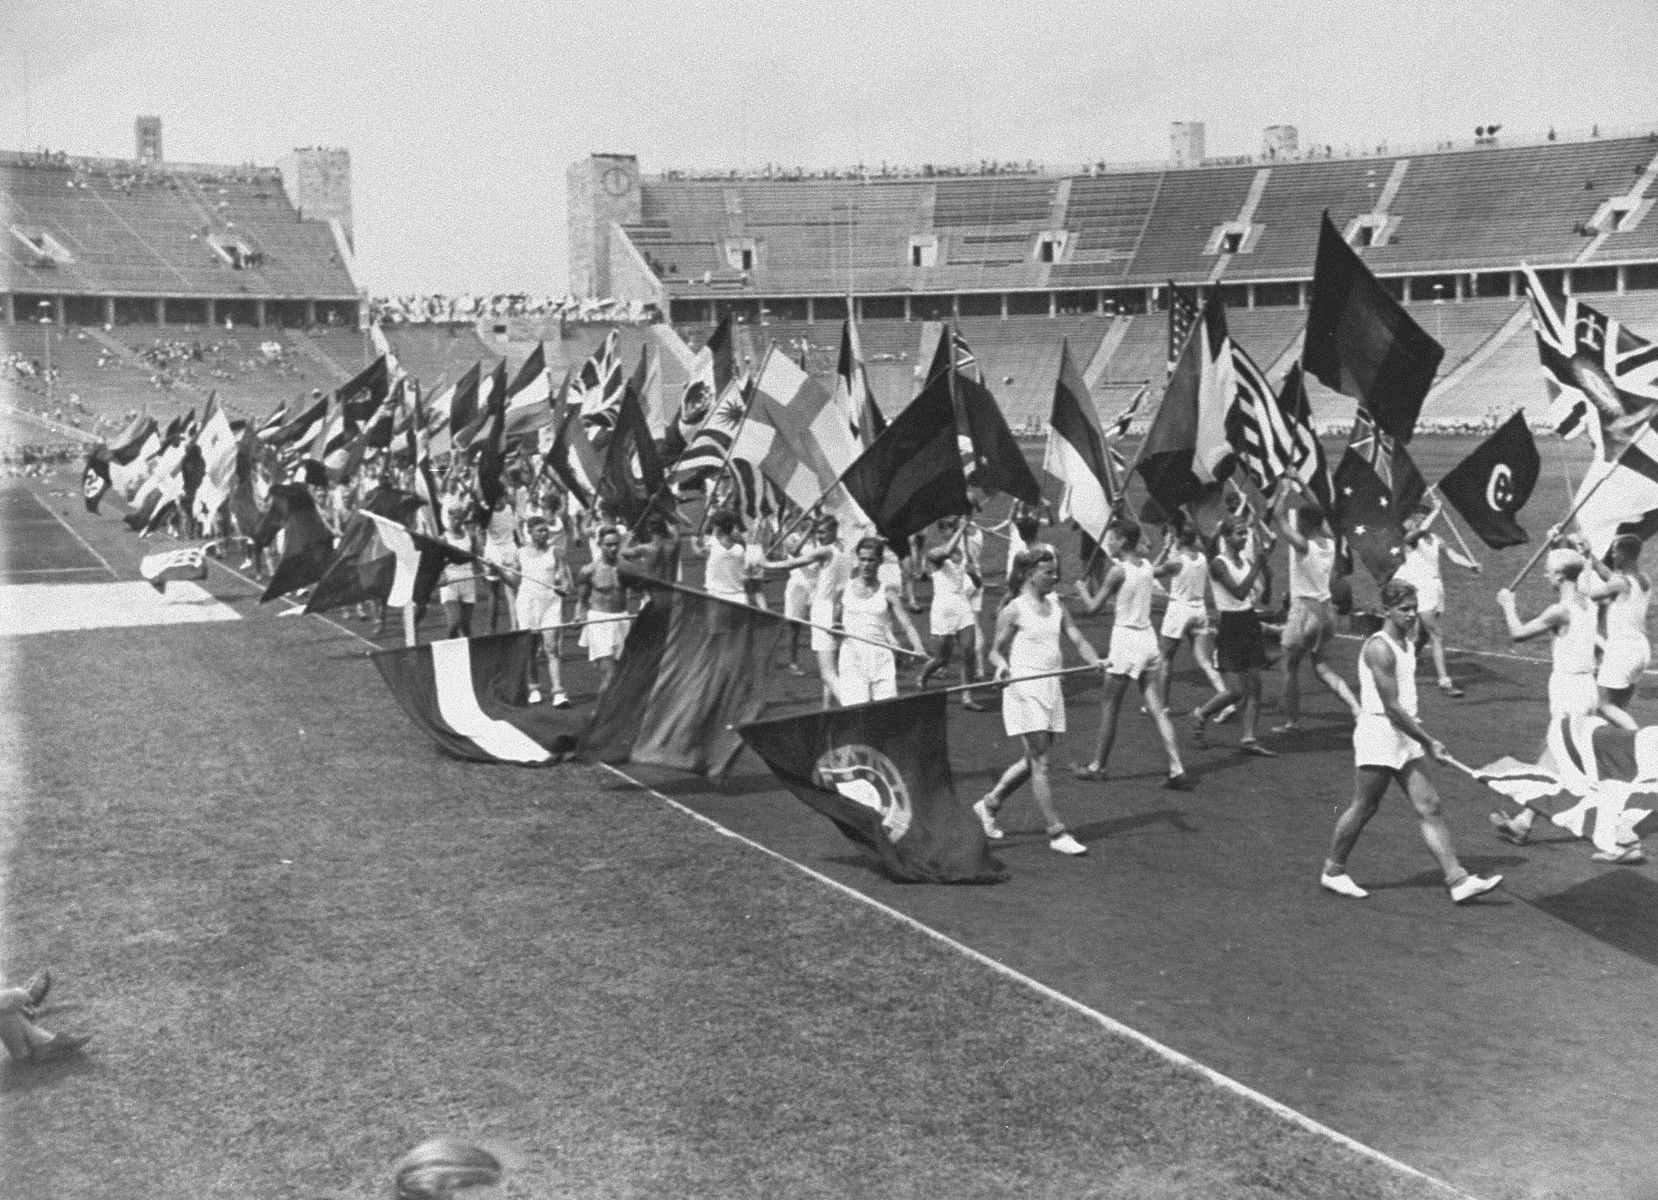 Flag carriers practicing for the parade that will open the 11th Olympiad.